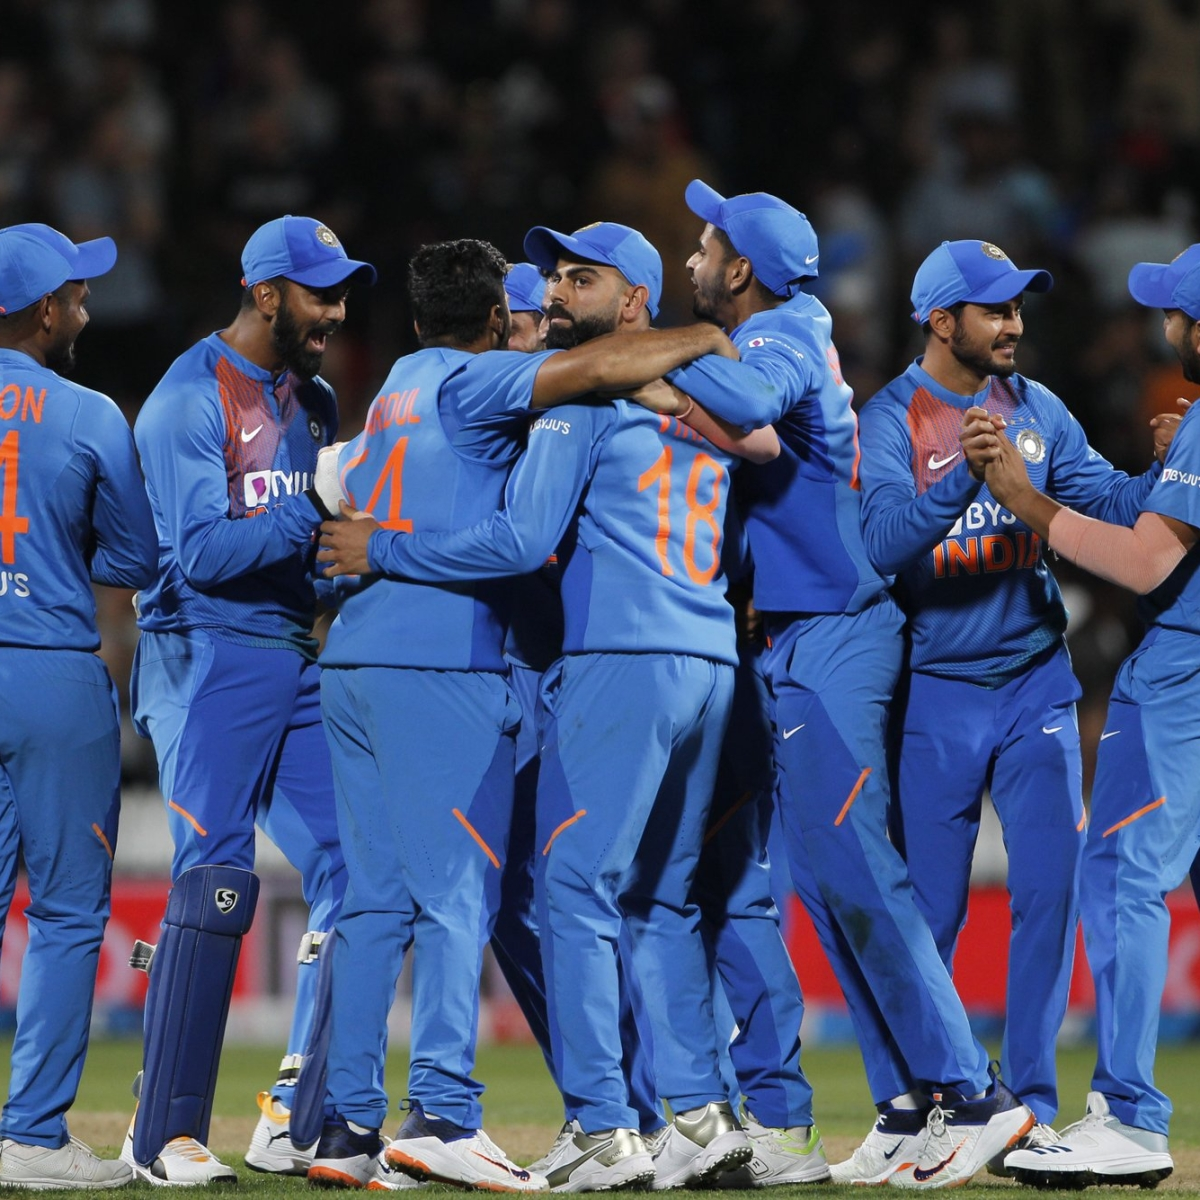 NZ vs IND 4th T20I: Virat Kohli and team fined 40% match fee for maintaining slow over-rate